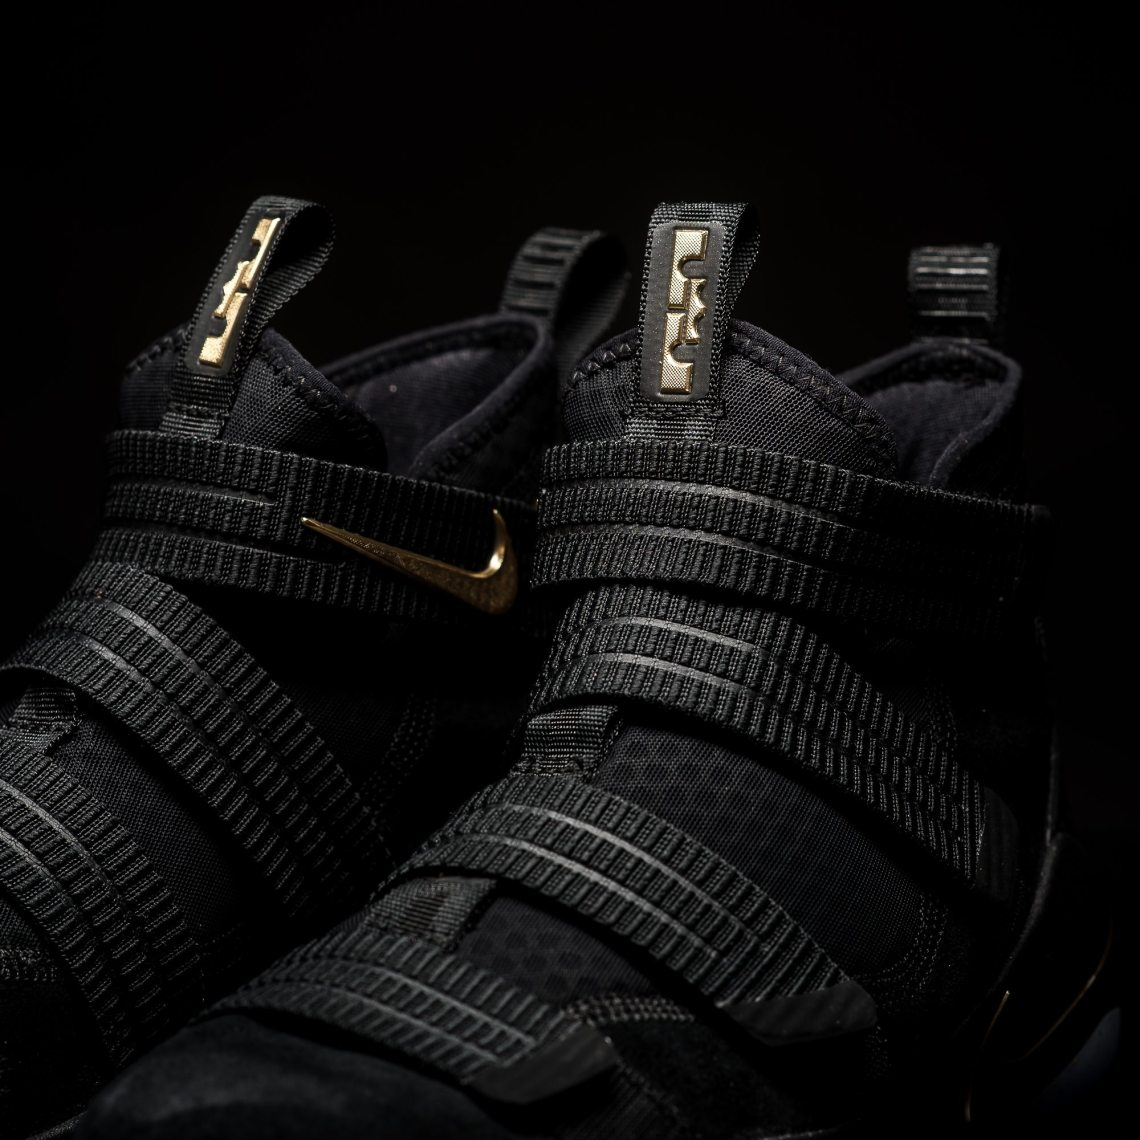 9b046e71d106 Nike LeBron Soldier 11 SFG Black Metallic Gold    Available Now ...